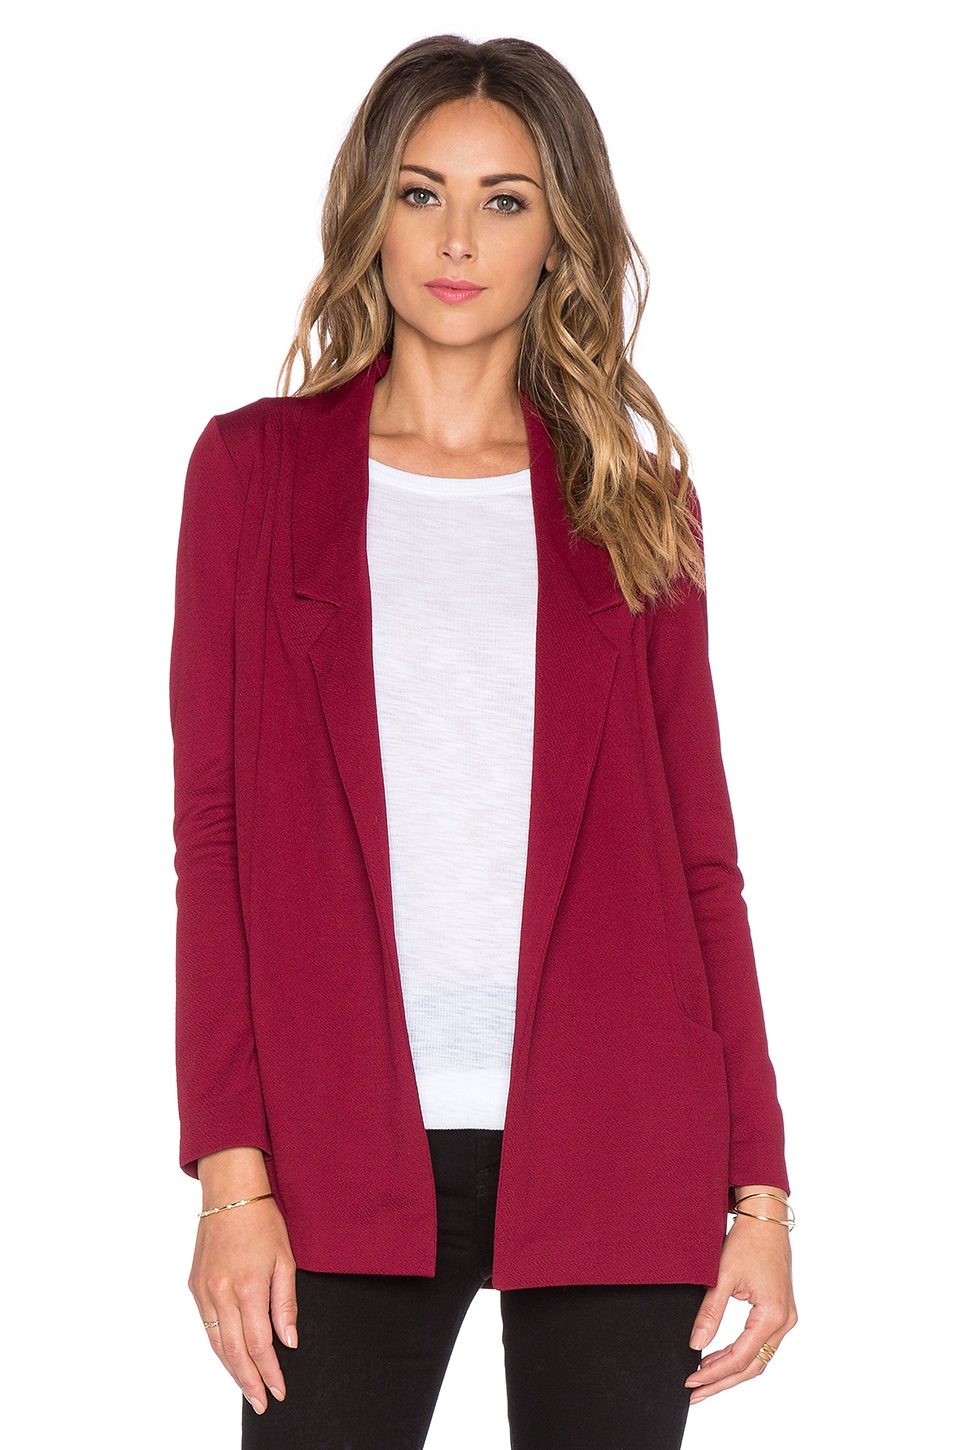 Bishop + Young Michelle Blazer in Burgundy